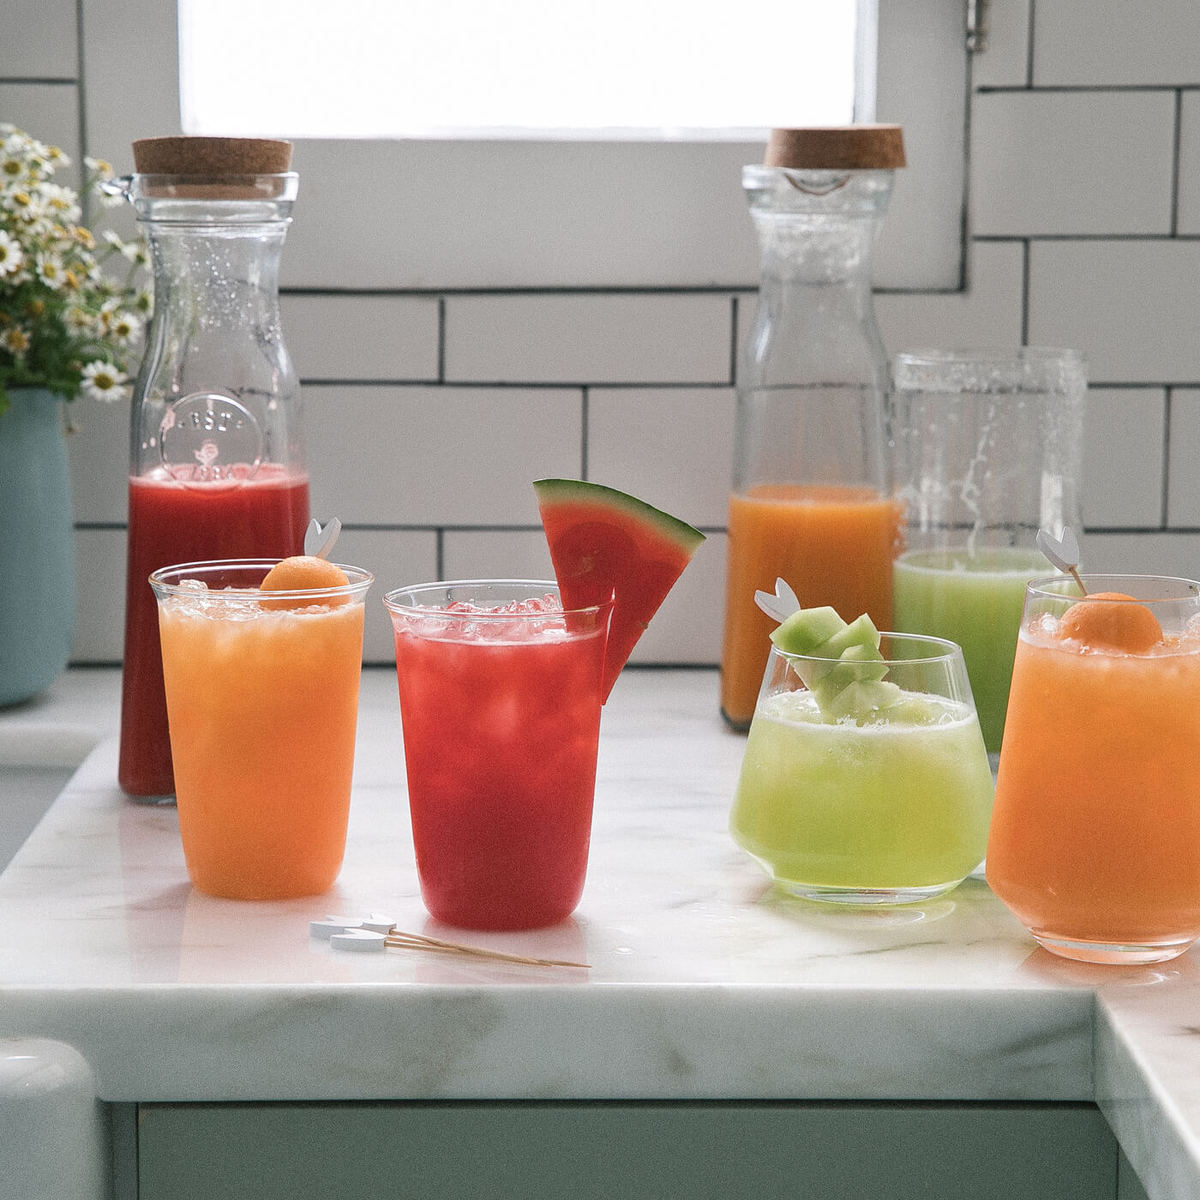 Aguas Frescas (Watermelon, Canteloupe + Honeydew)